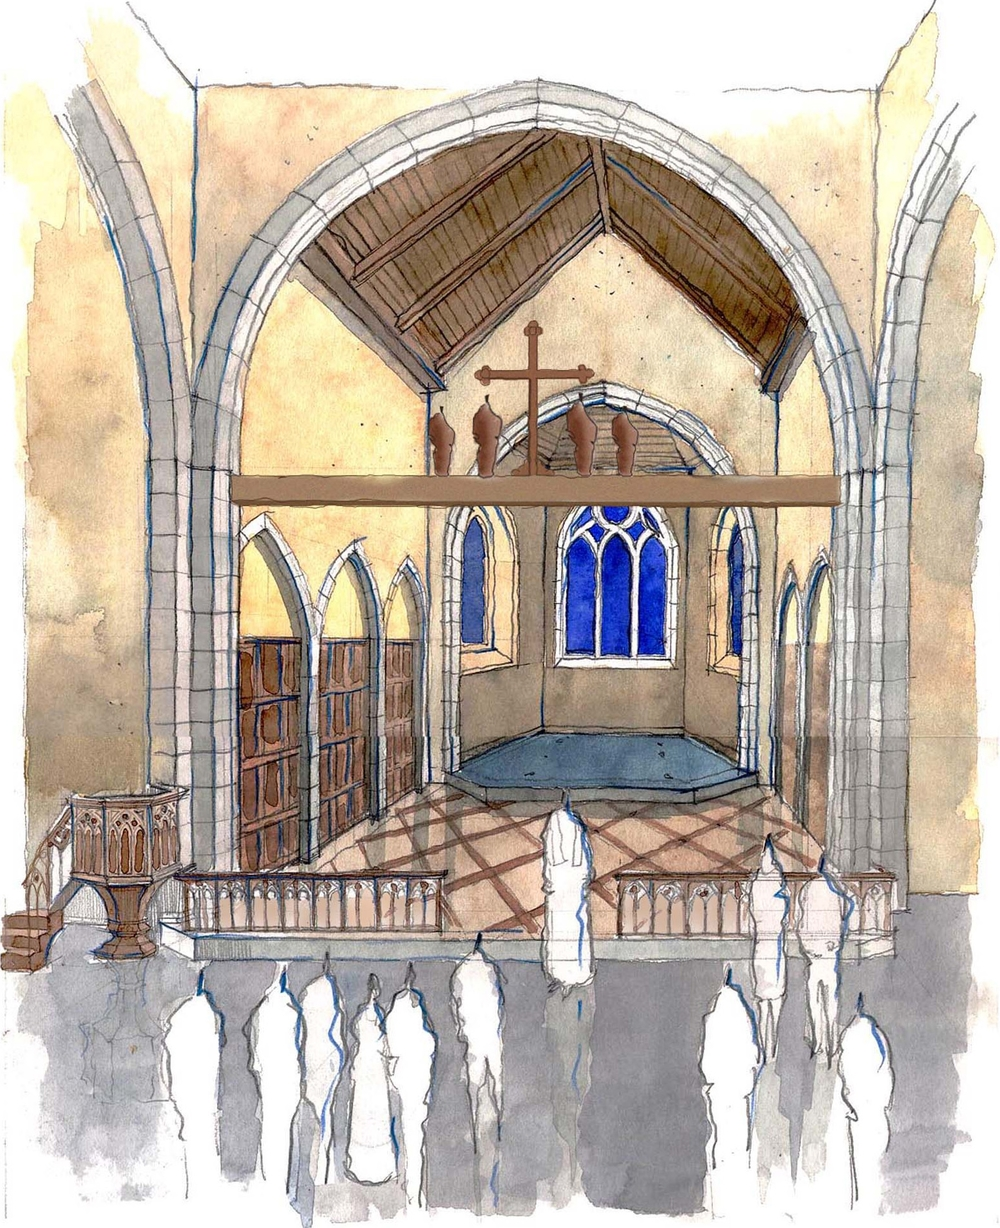 OLW - Sketch Chancel 6x7 300dpi.jpg